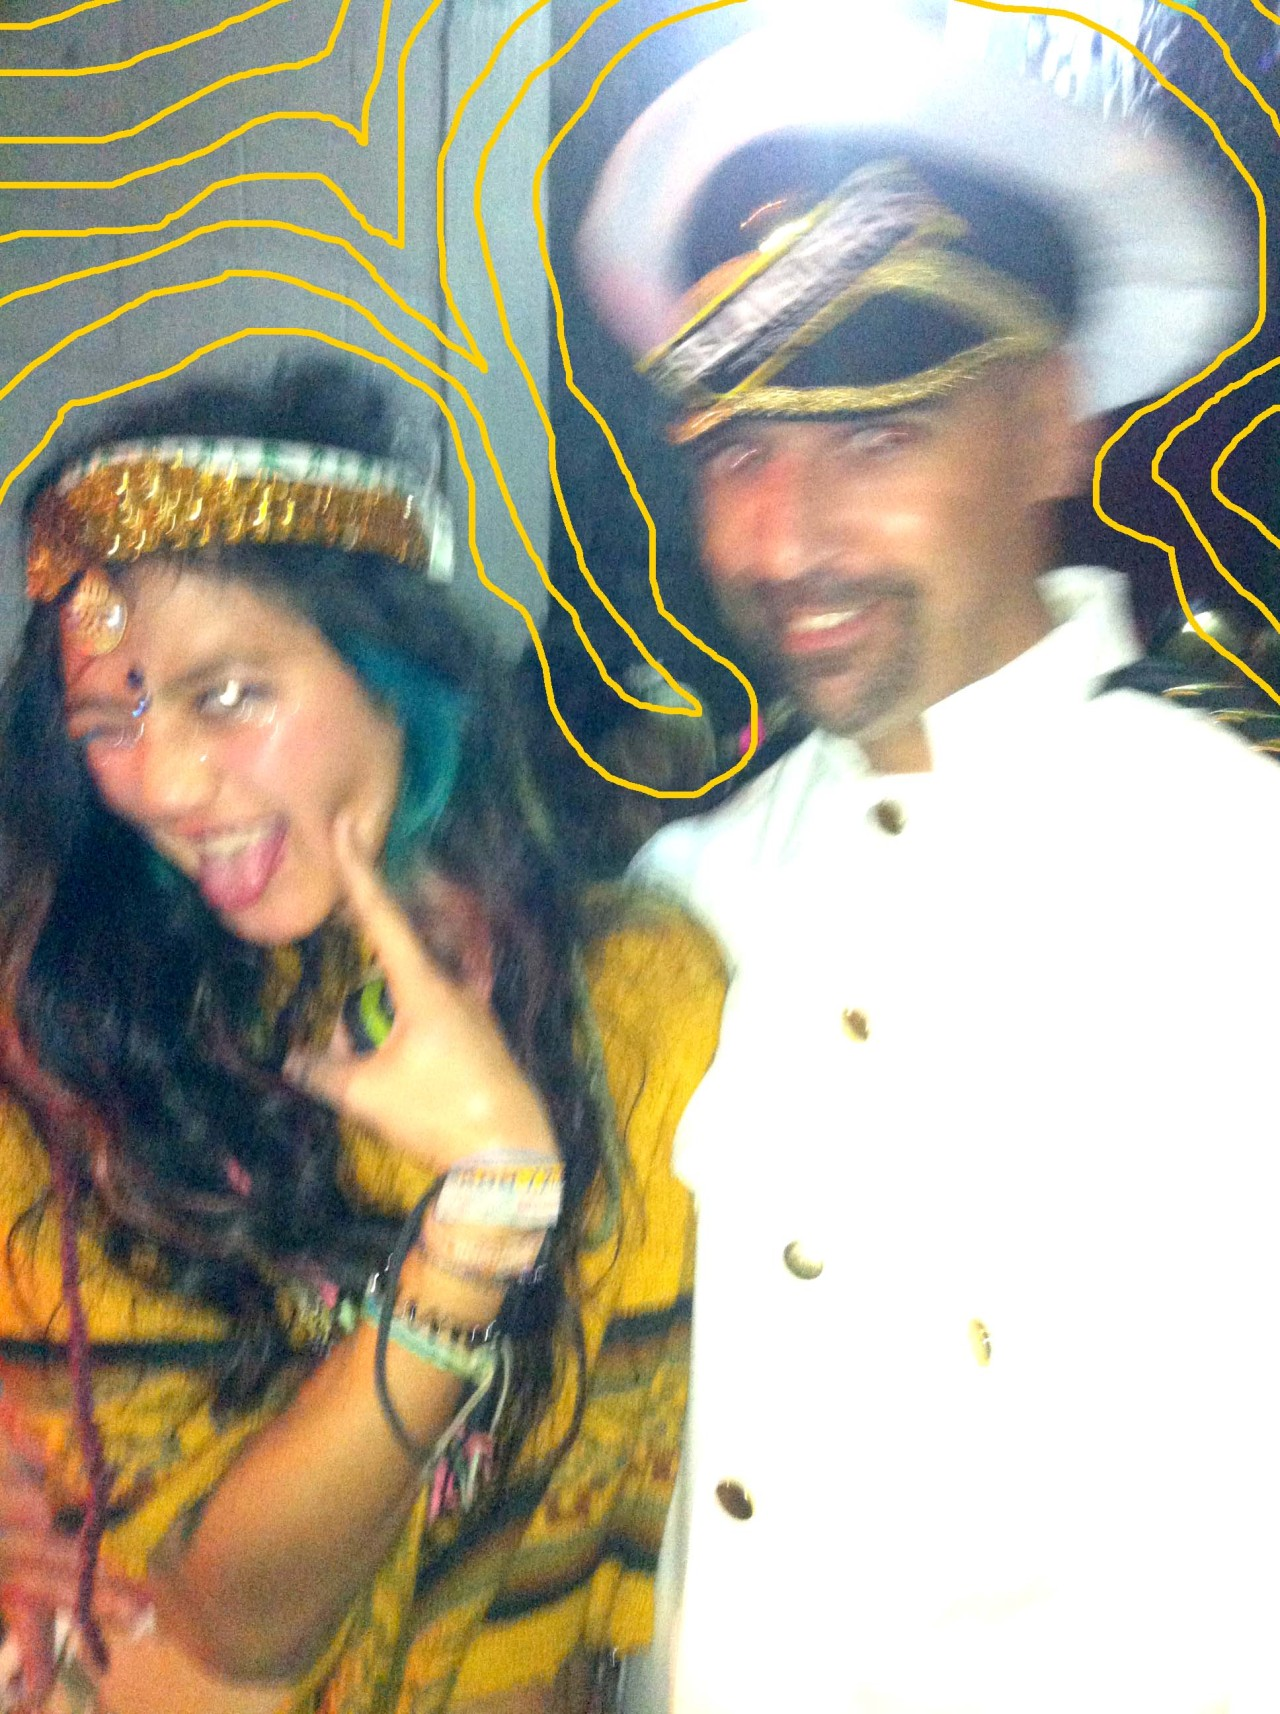 me n a sailor ooooh